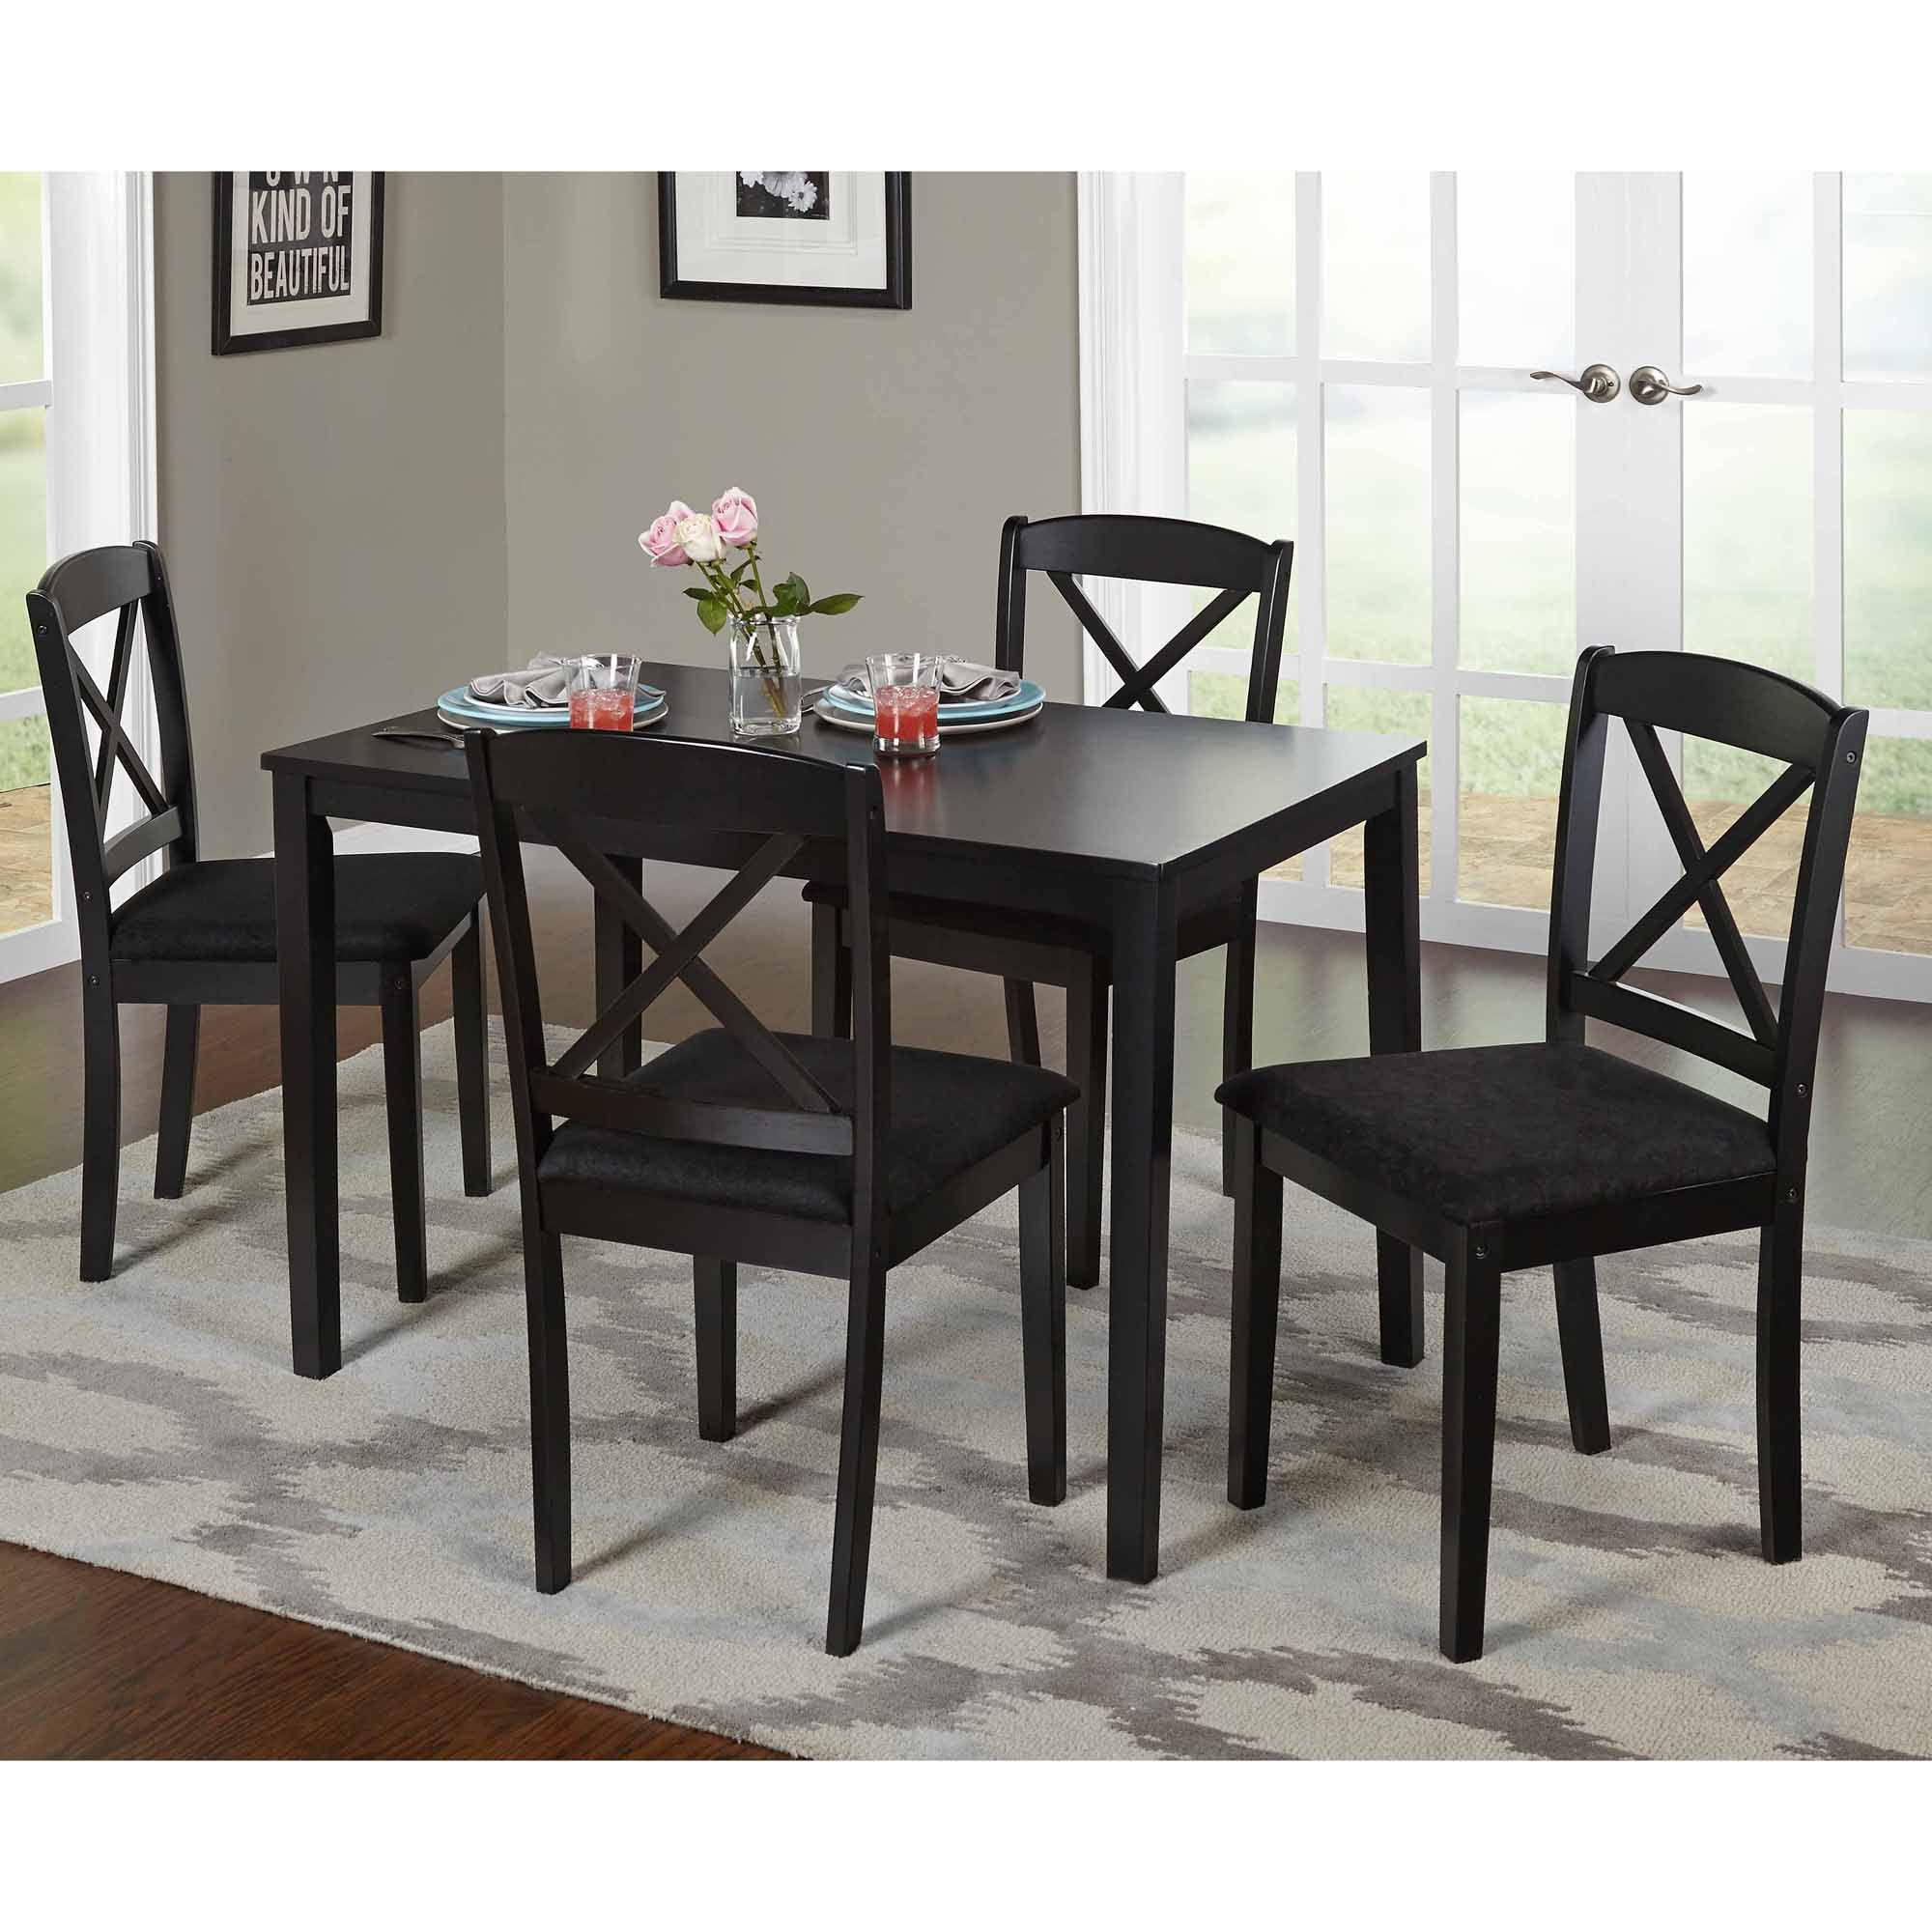 Mainstays 5 piece dining set walmart com